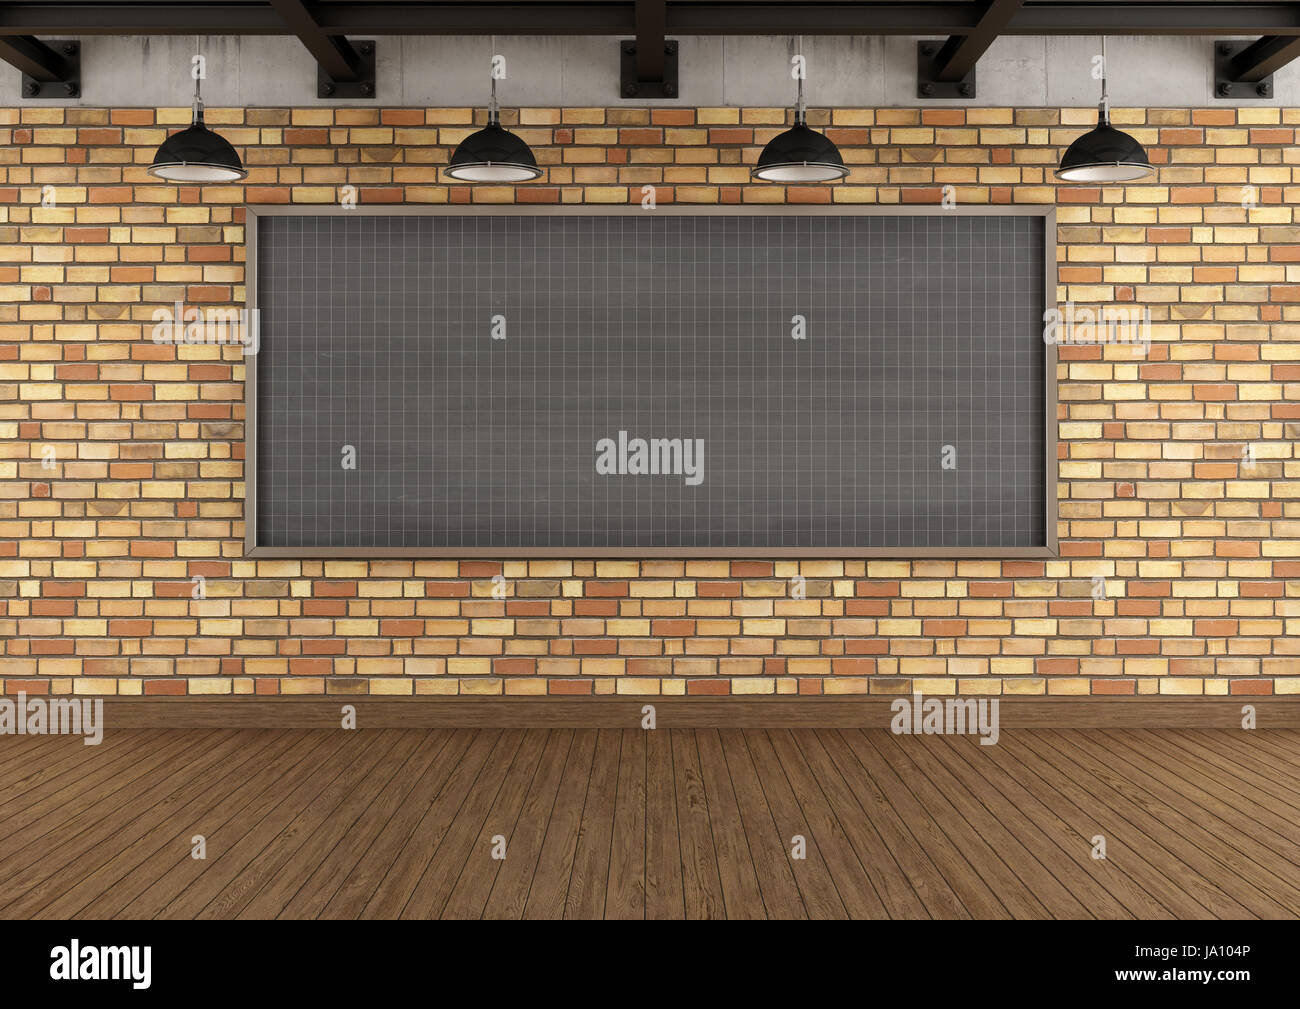 Loft Brick Wall Concrete Beams Stockfotos & Loft Brick Wall Concrete ...